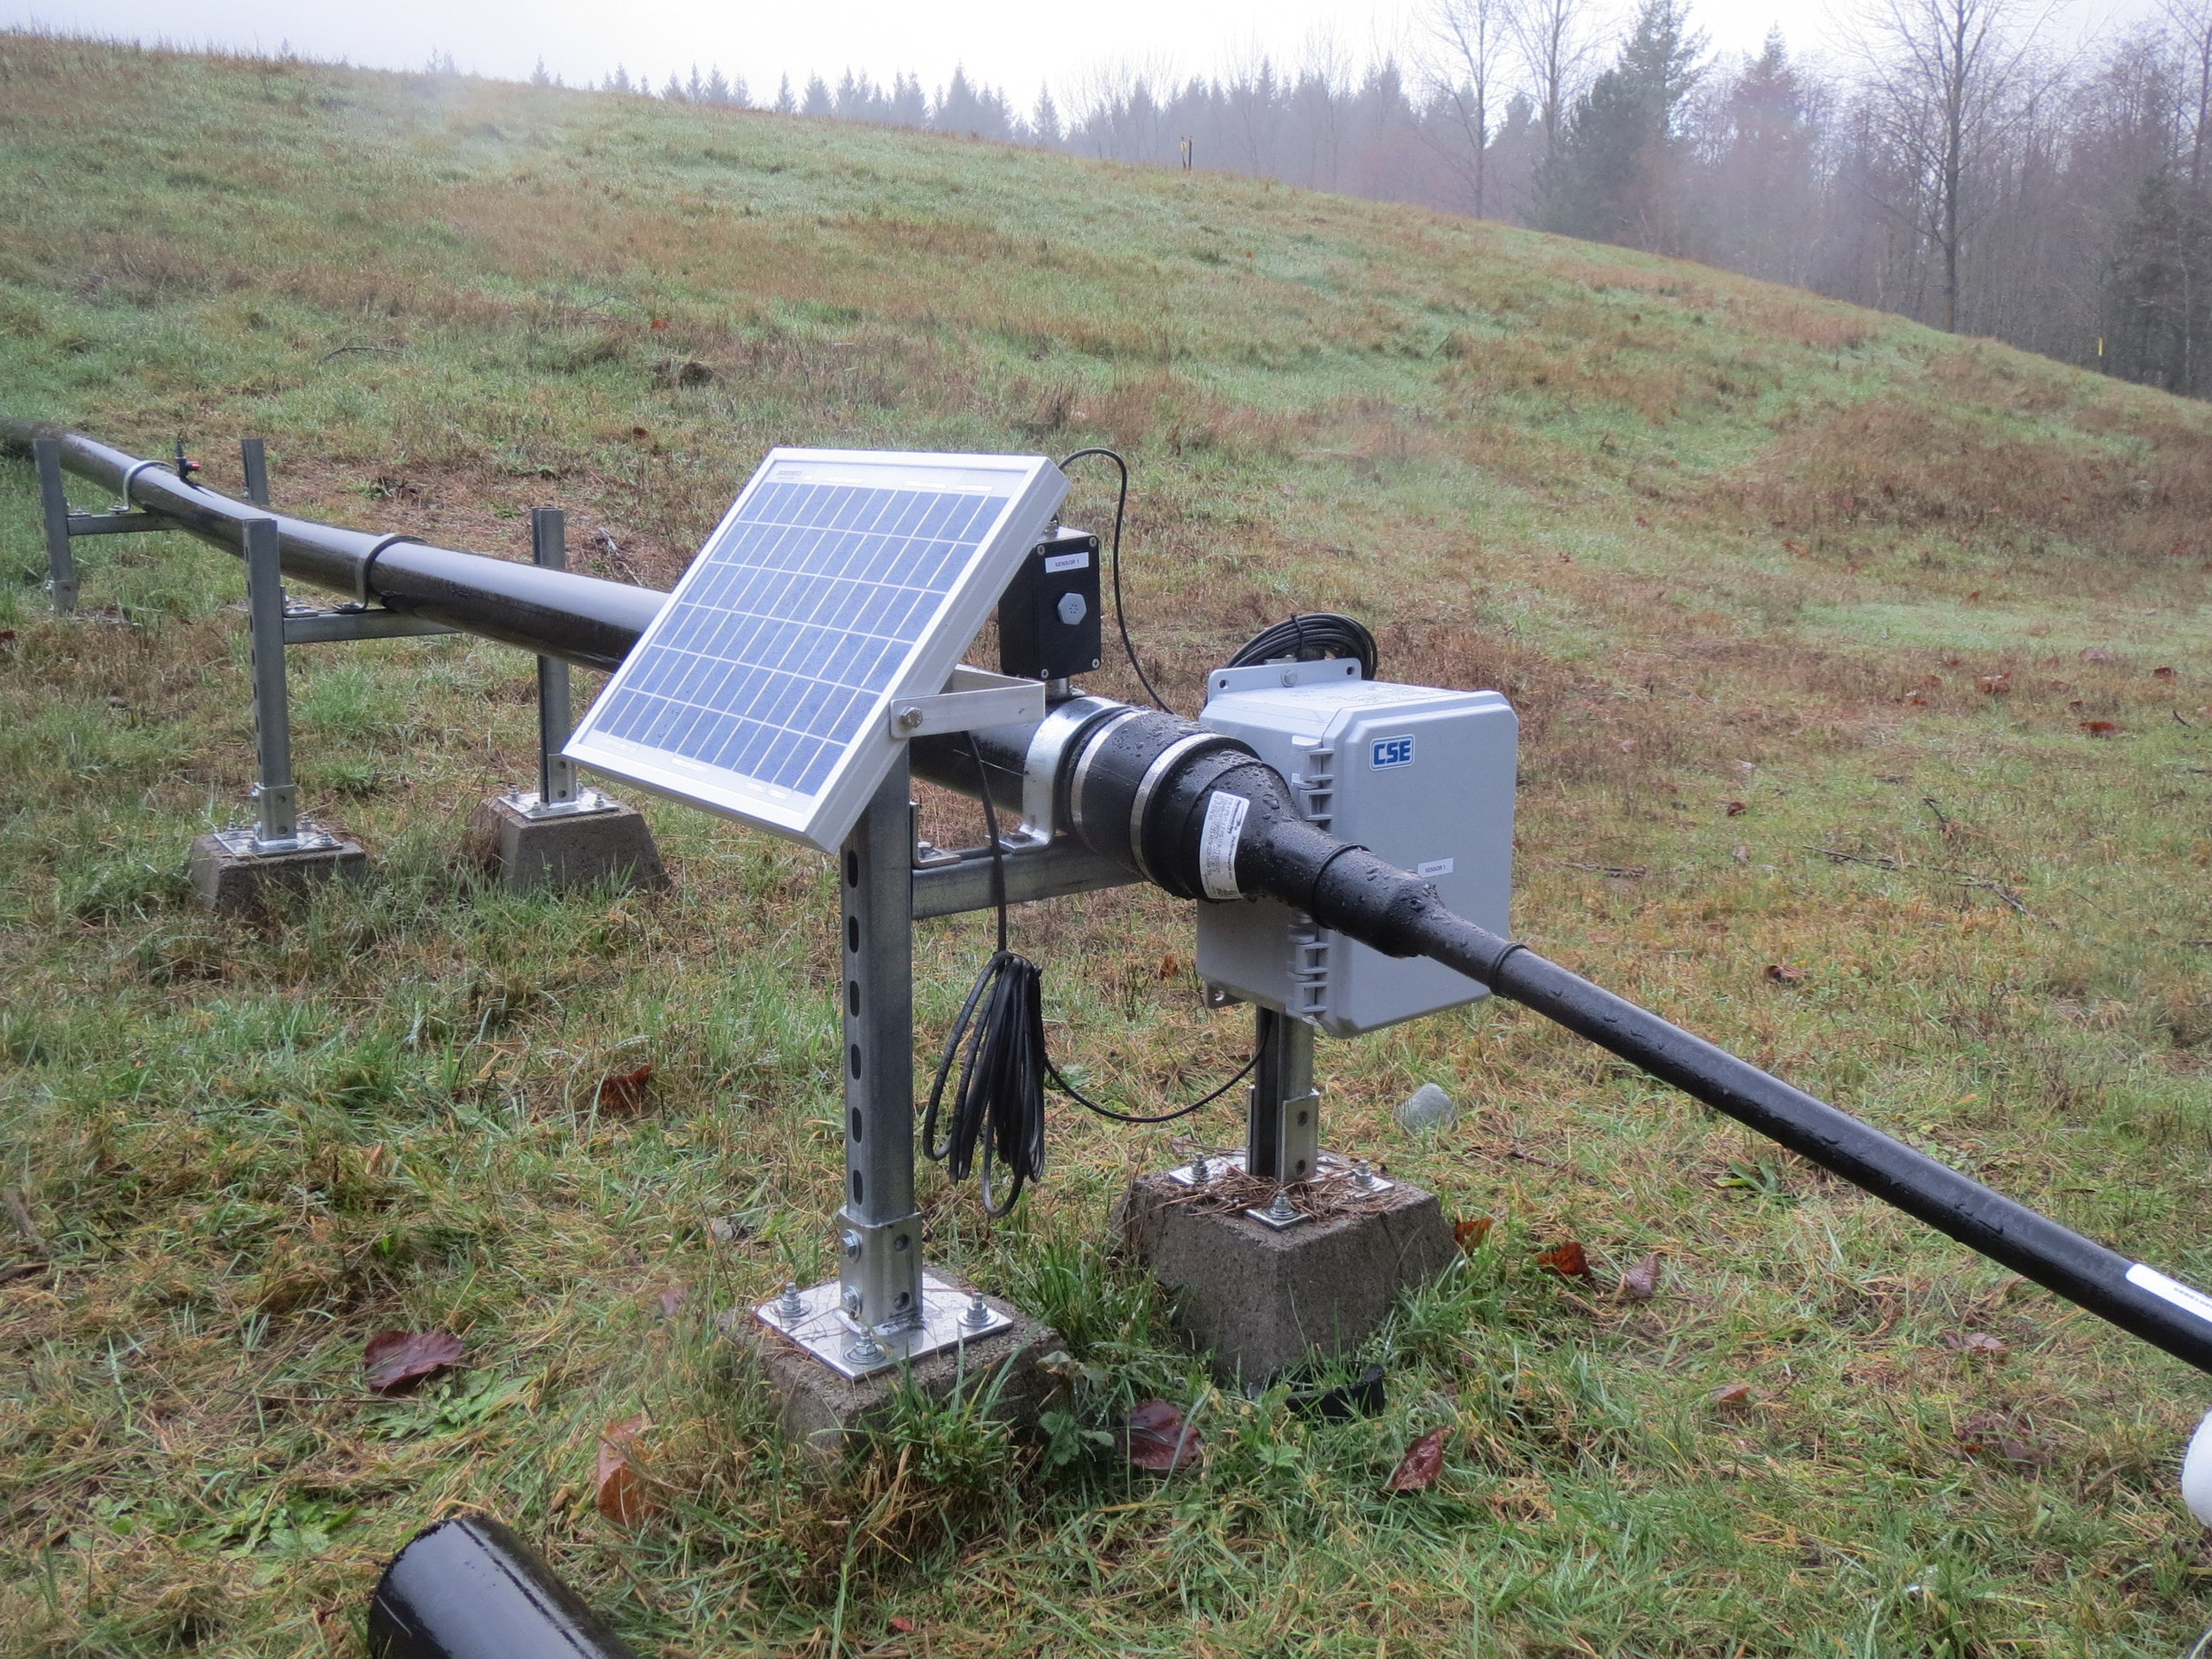 Got methane? CSE remote methane monitoring setup with telemetry and solar panel  on a passive landfill gas collection system in King County, Washington.